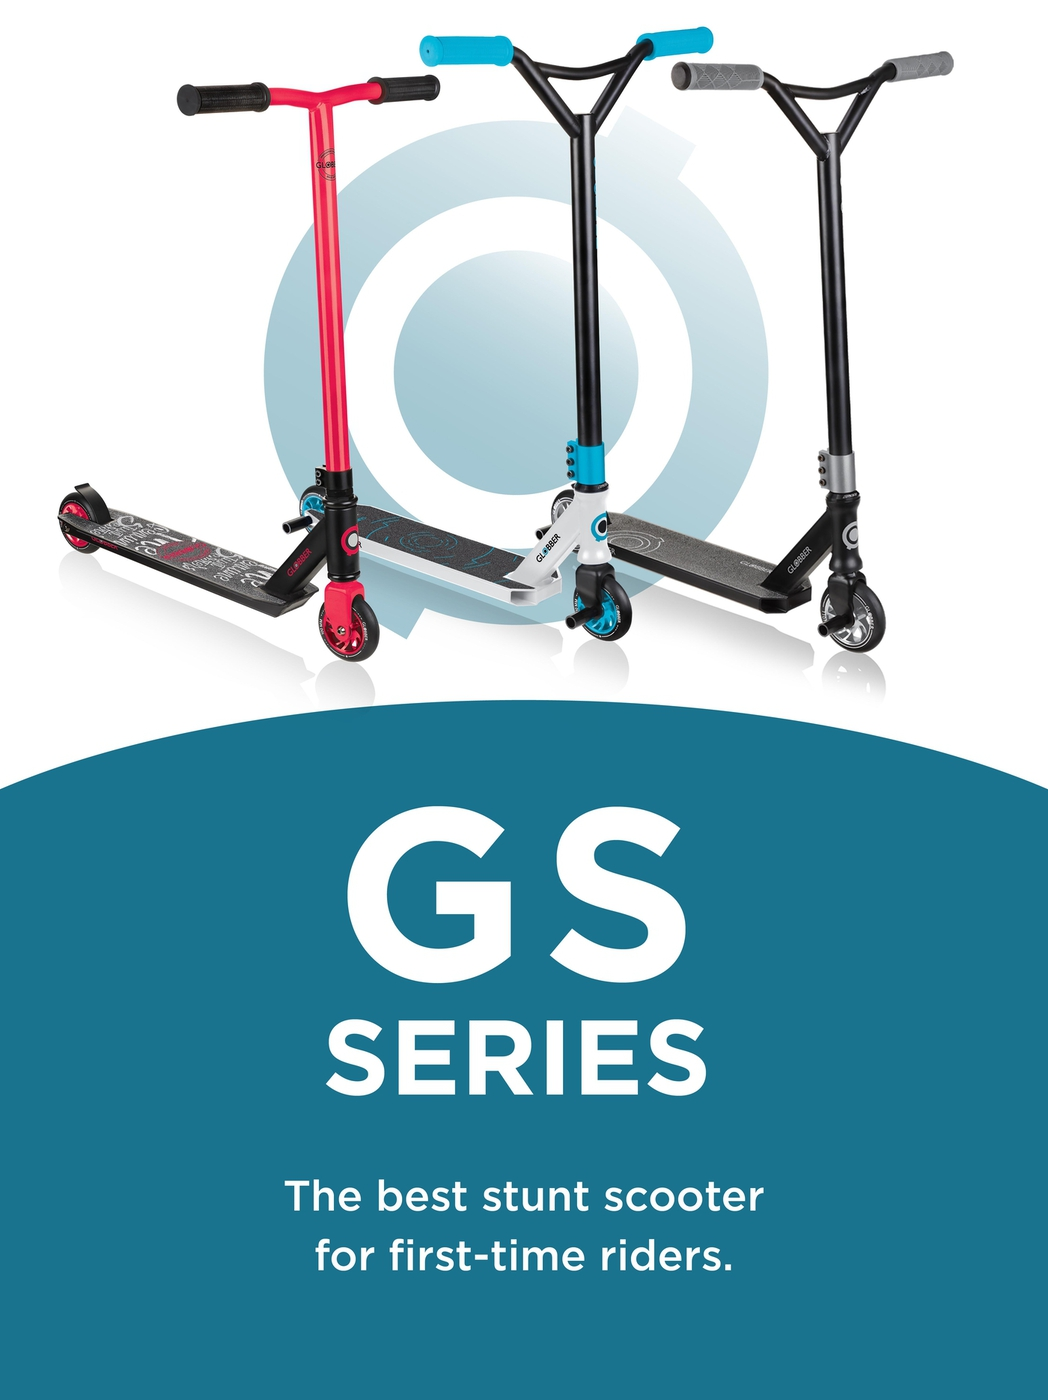 The best stunt scooter fo first-time riders